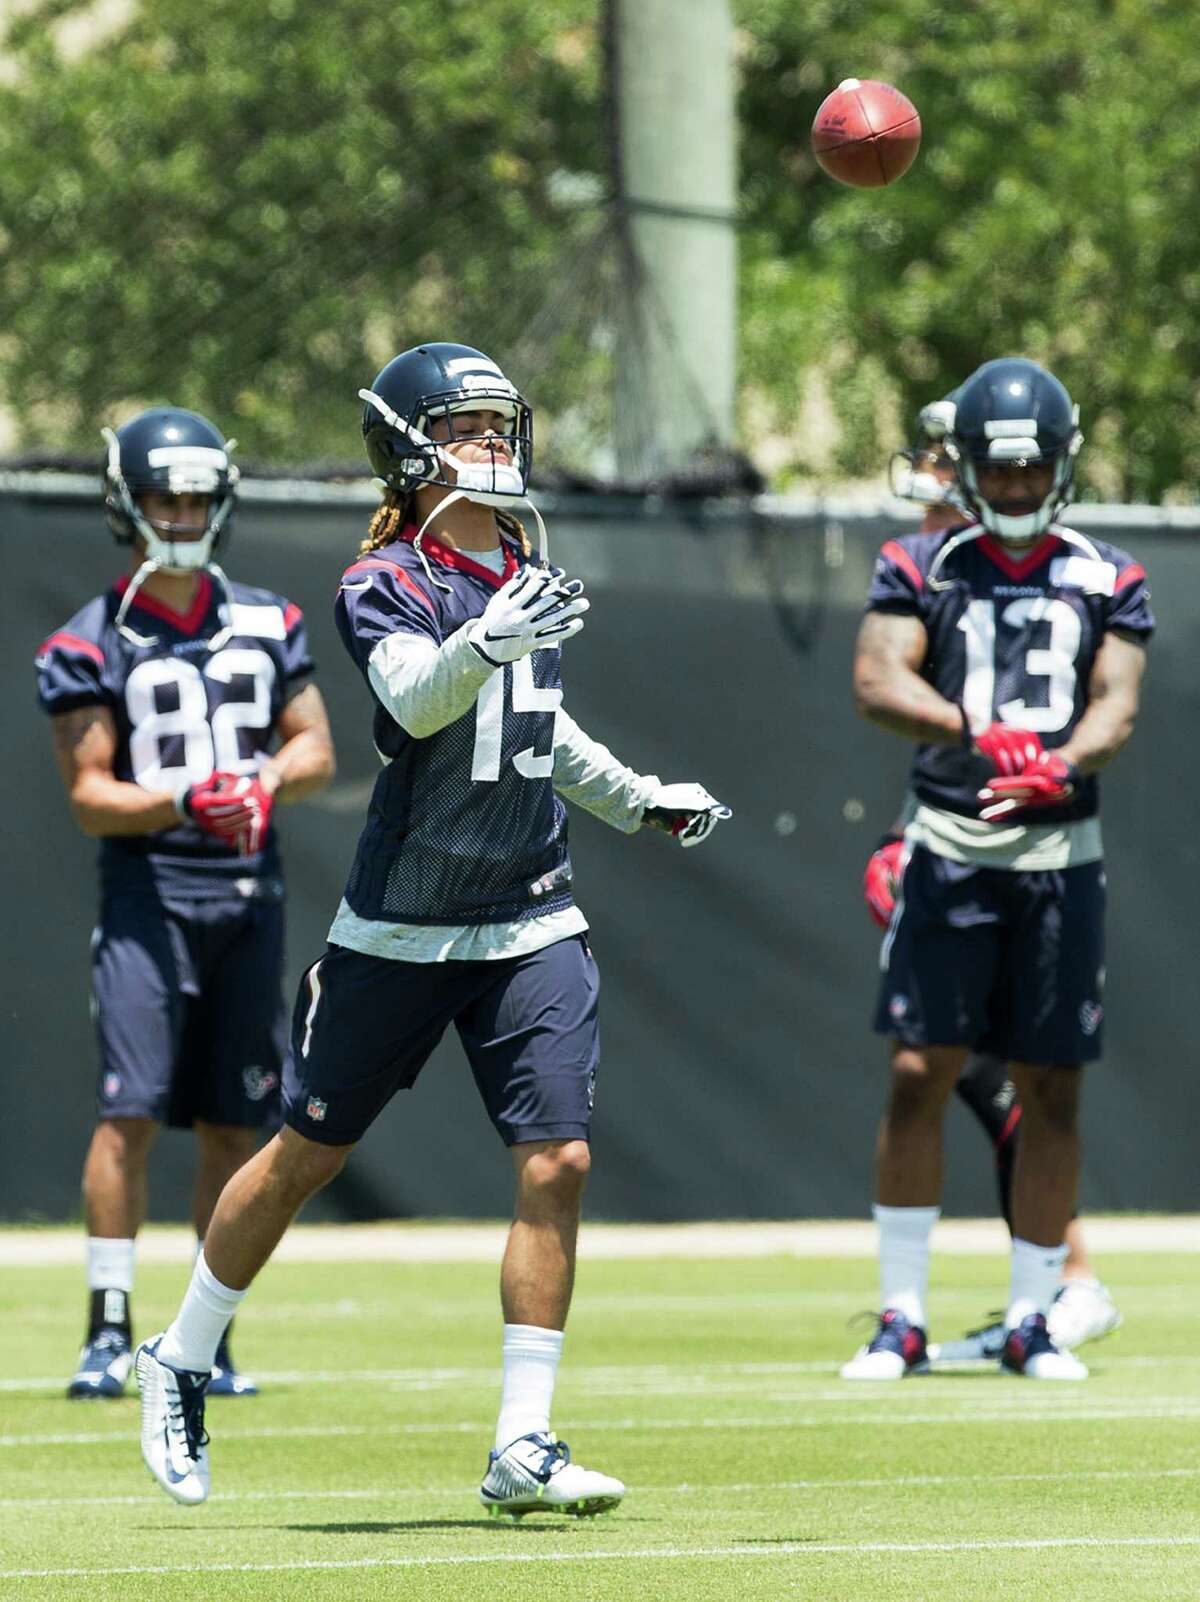 3. Development of the young receivers Will Fuller (first round, 15) and Braxton Miller (third, 13) are rookies. Jaelen Strong and Keith Mumphery enter their second seasons. That's a lot of inexperience. New receivers coach Sean Ryan has his work cut out, but he's got a lot of talent and speed to work with.